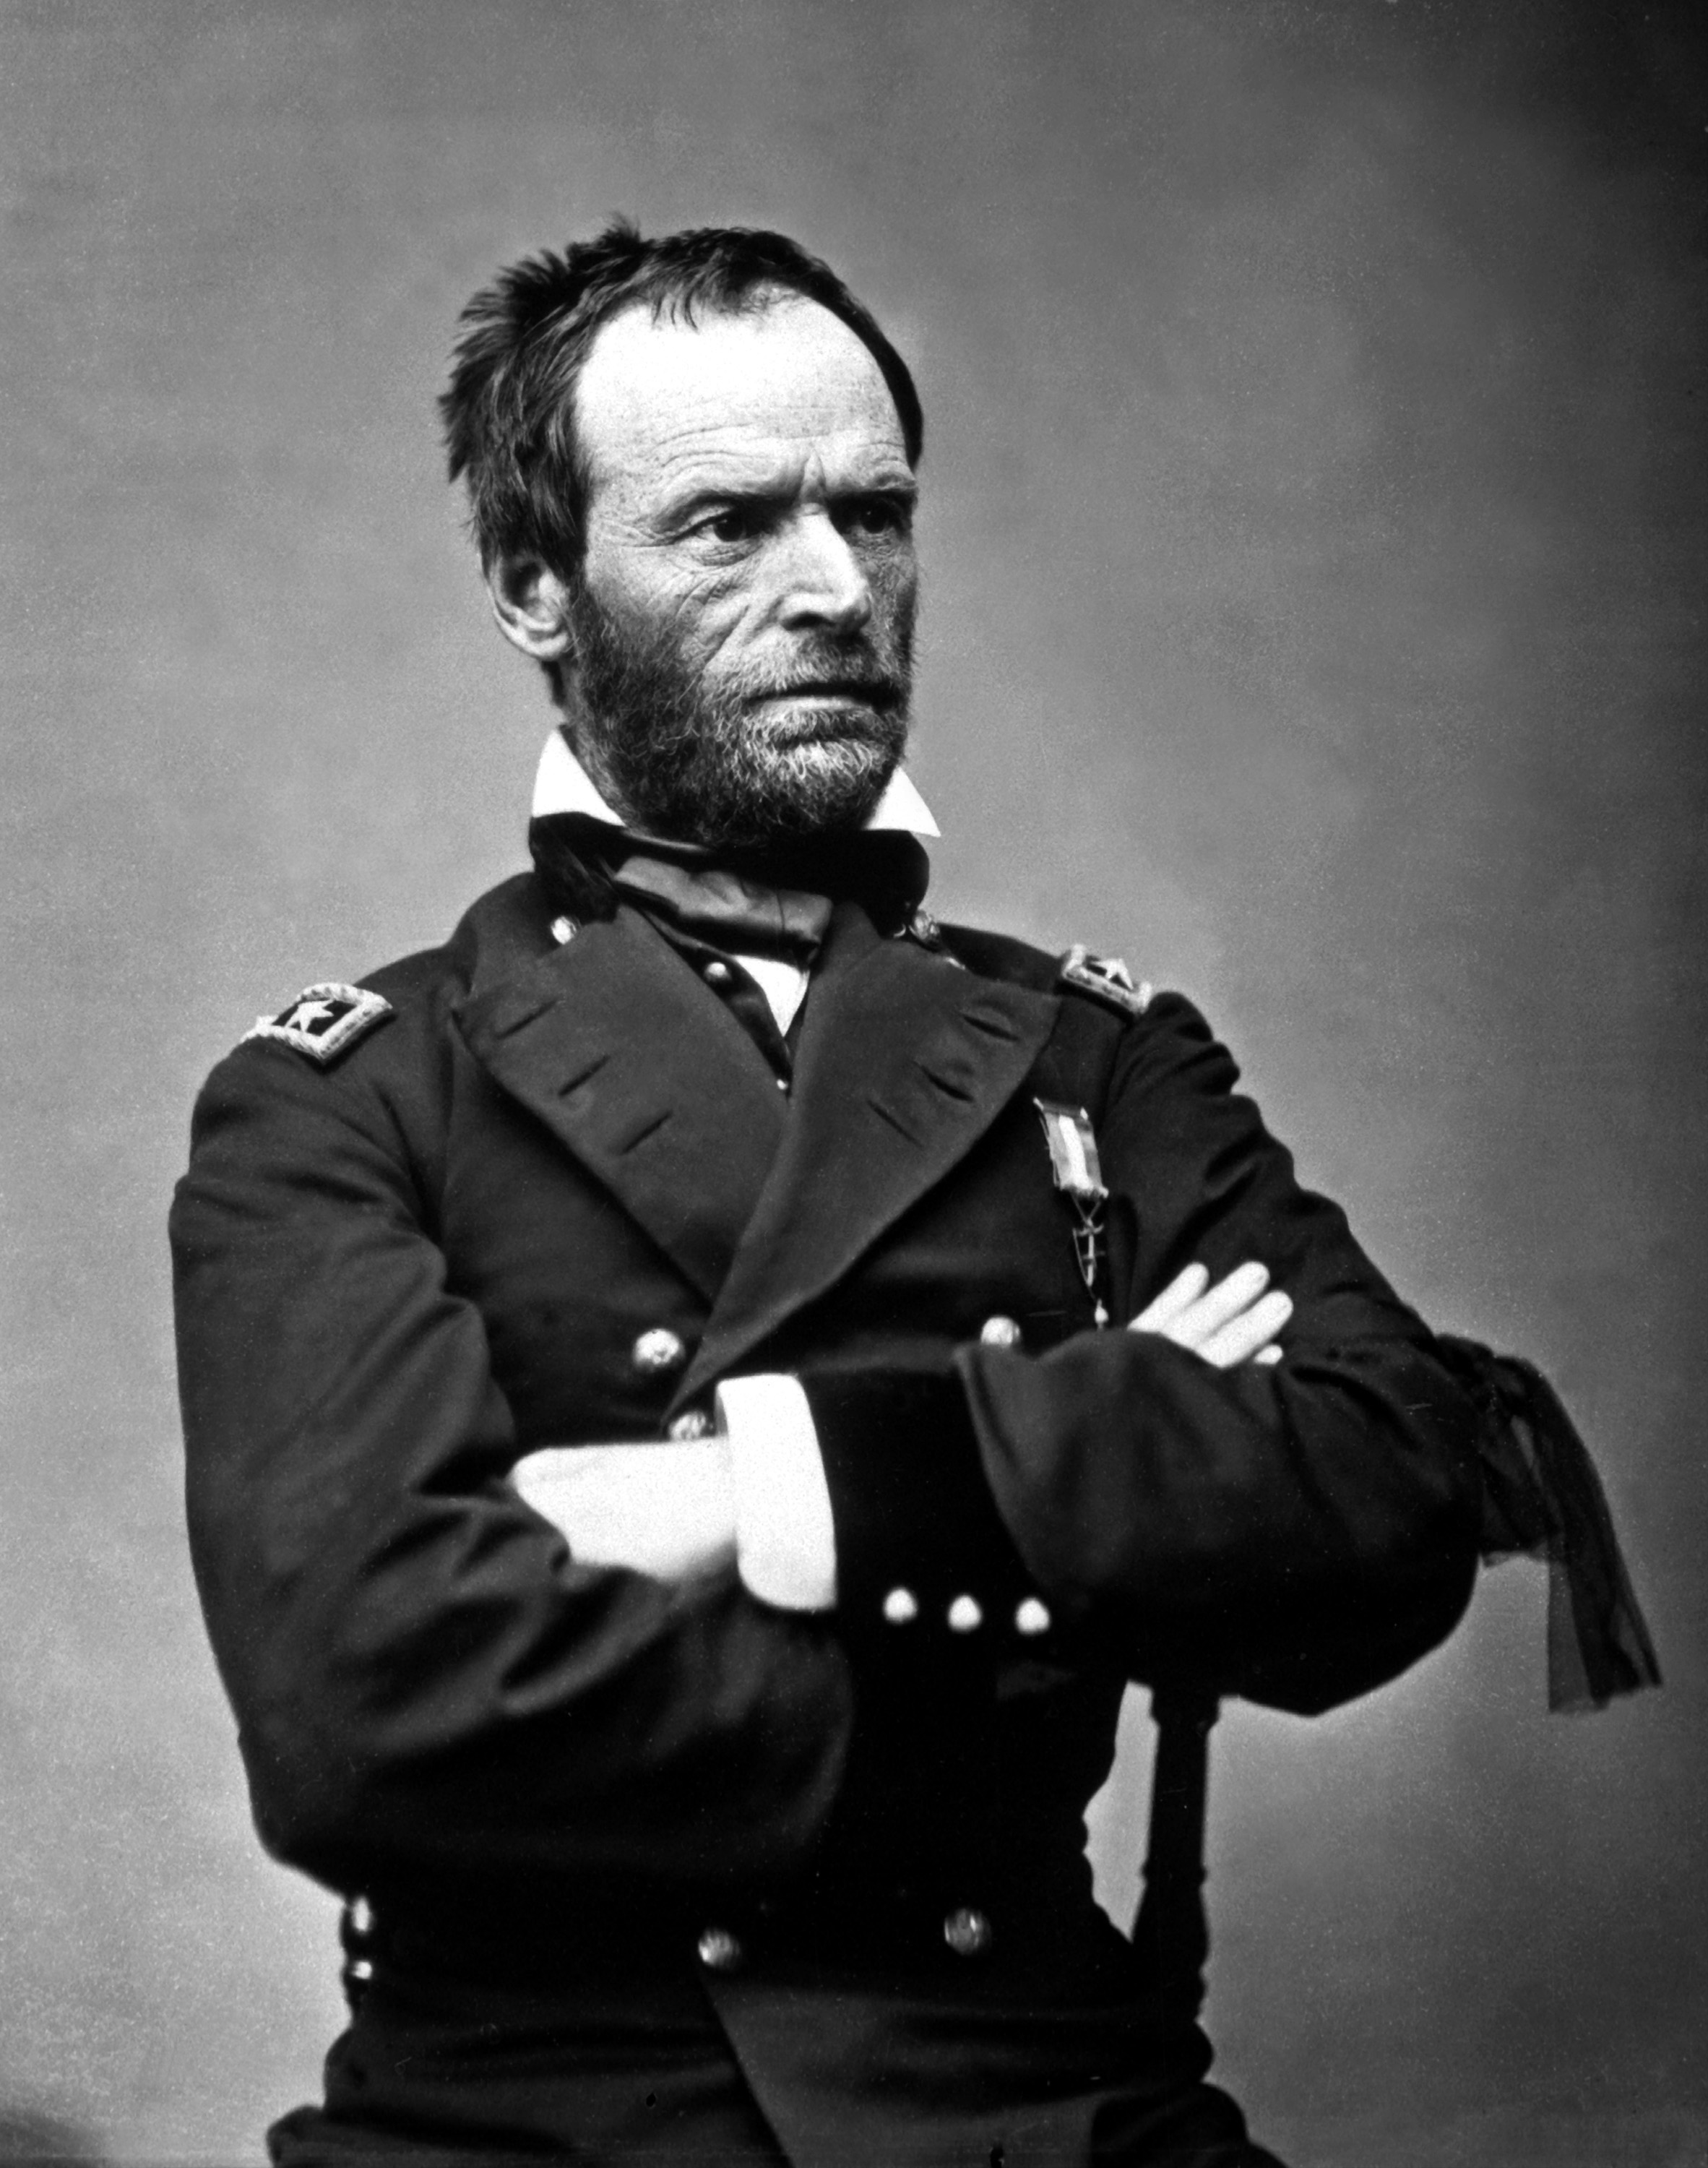 """General William Tecumseh Sherman: """"You cannot qualify war in harsher terms than I will. War is cruelty, and you cannot refine it."""" (Public Domain)"""